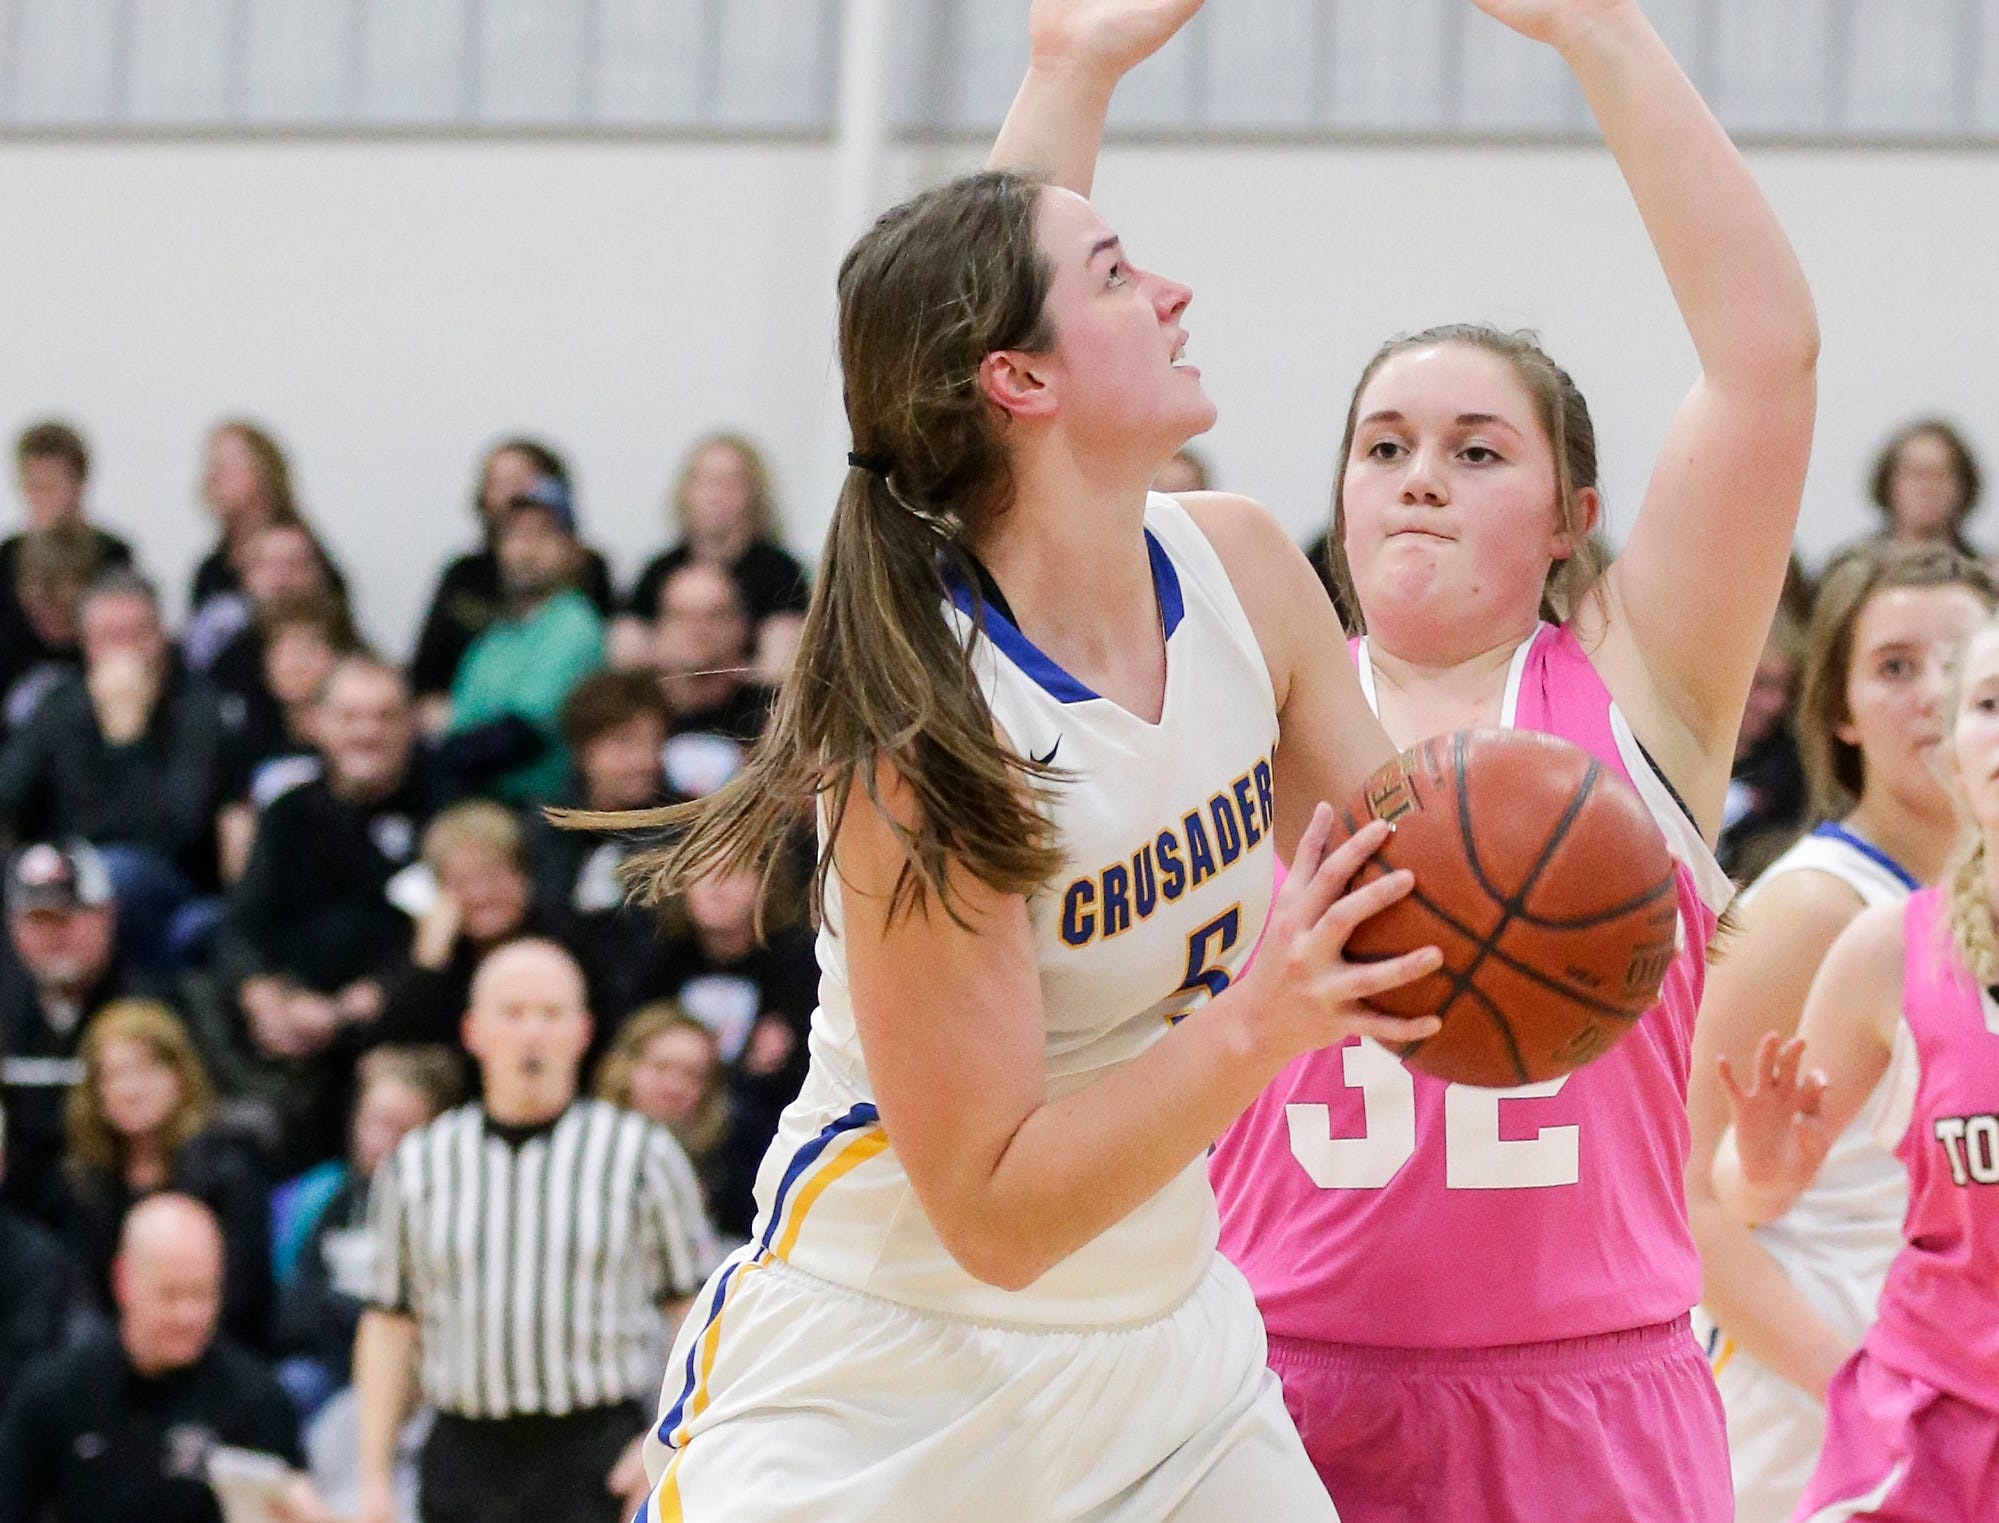 Central Wisconsin Christian High School girls basketball's Melissa Van Den Berg eyes up the basket against Cambria-Friesland's Abbigail Schwark during their game Thursday, January 3, 2019 in Waupun. Cambria-Friesland won the game 58-44. Doug Raflik/USA TODAY NETWORK-Wisconsin